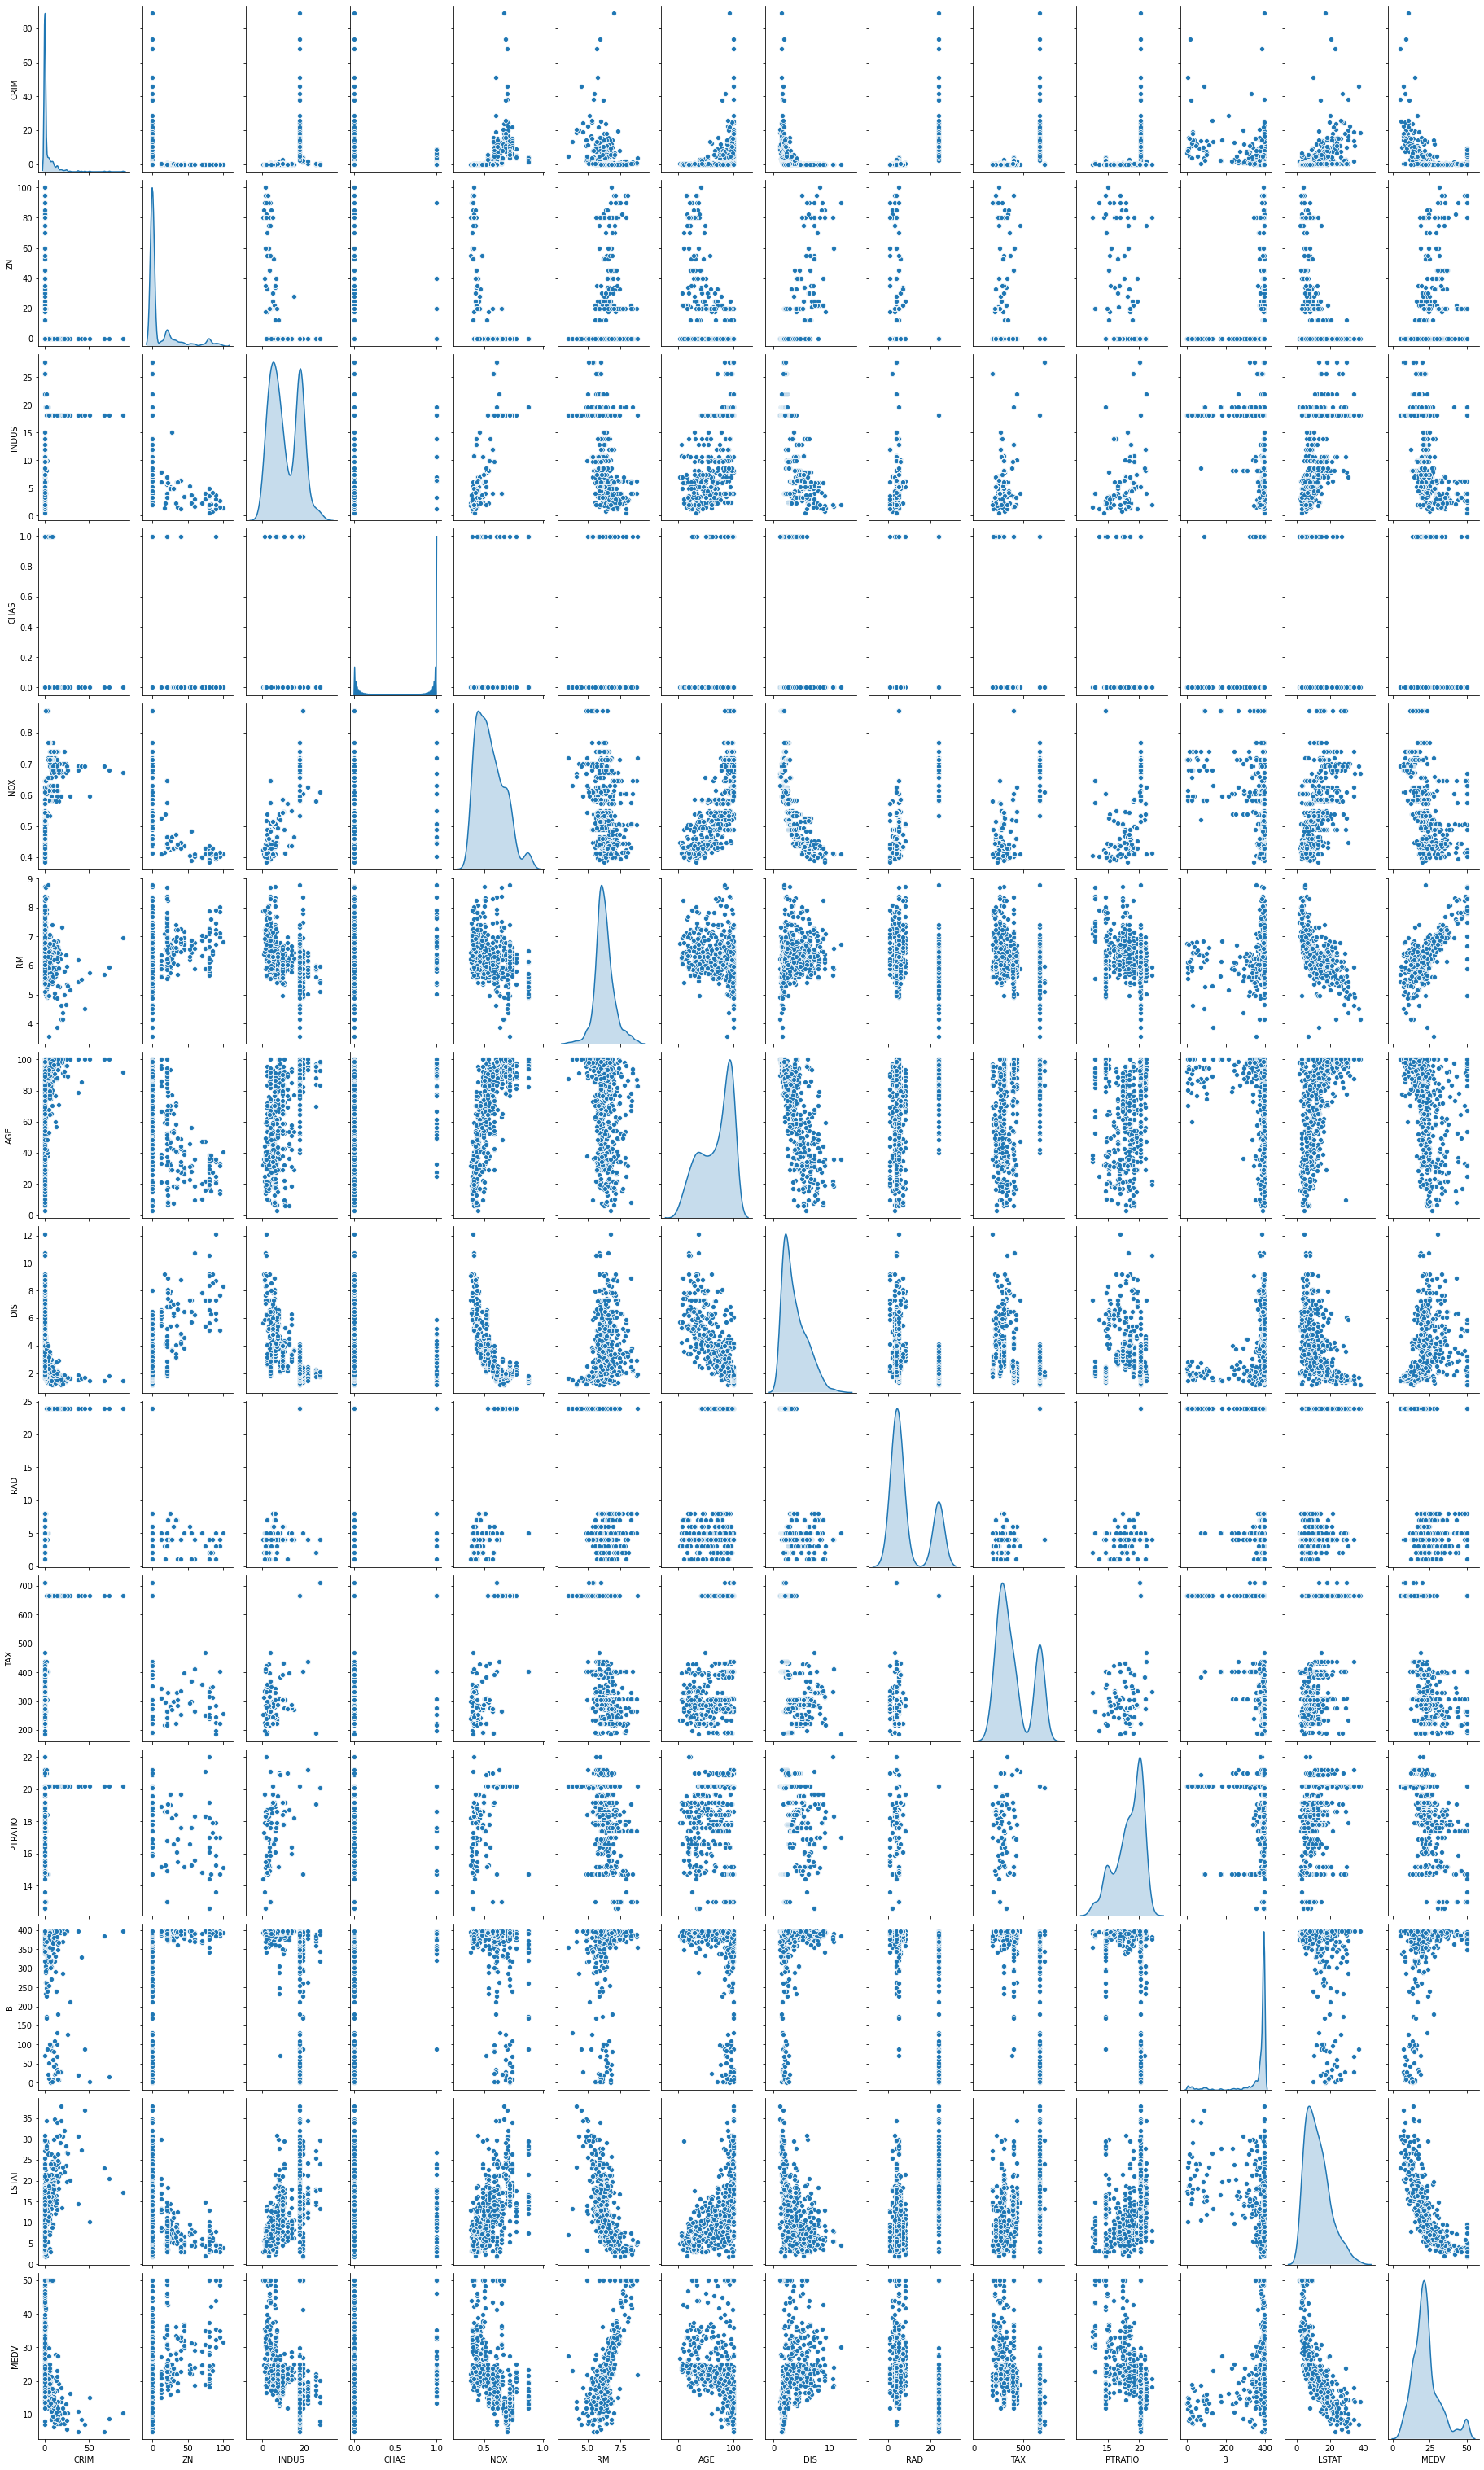 correlations pairplot